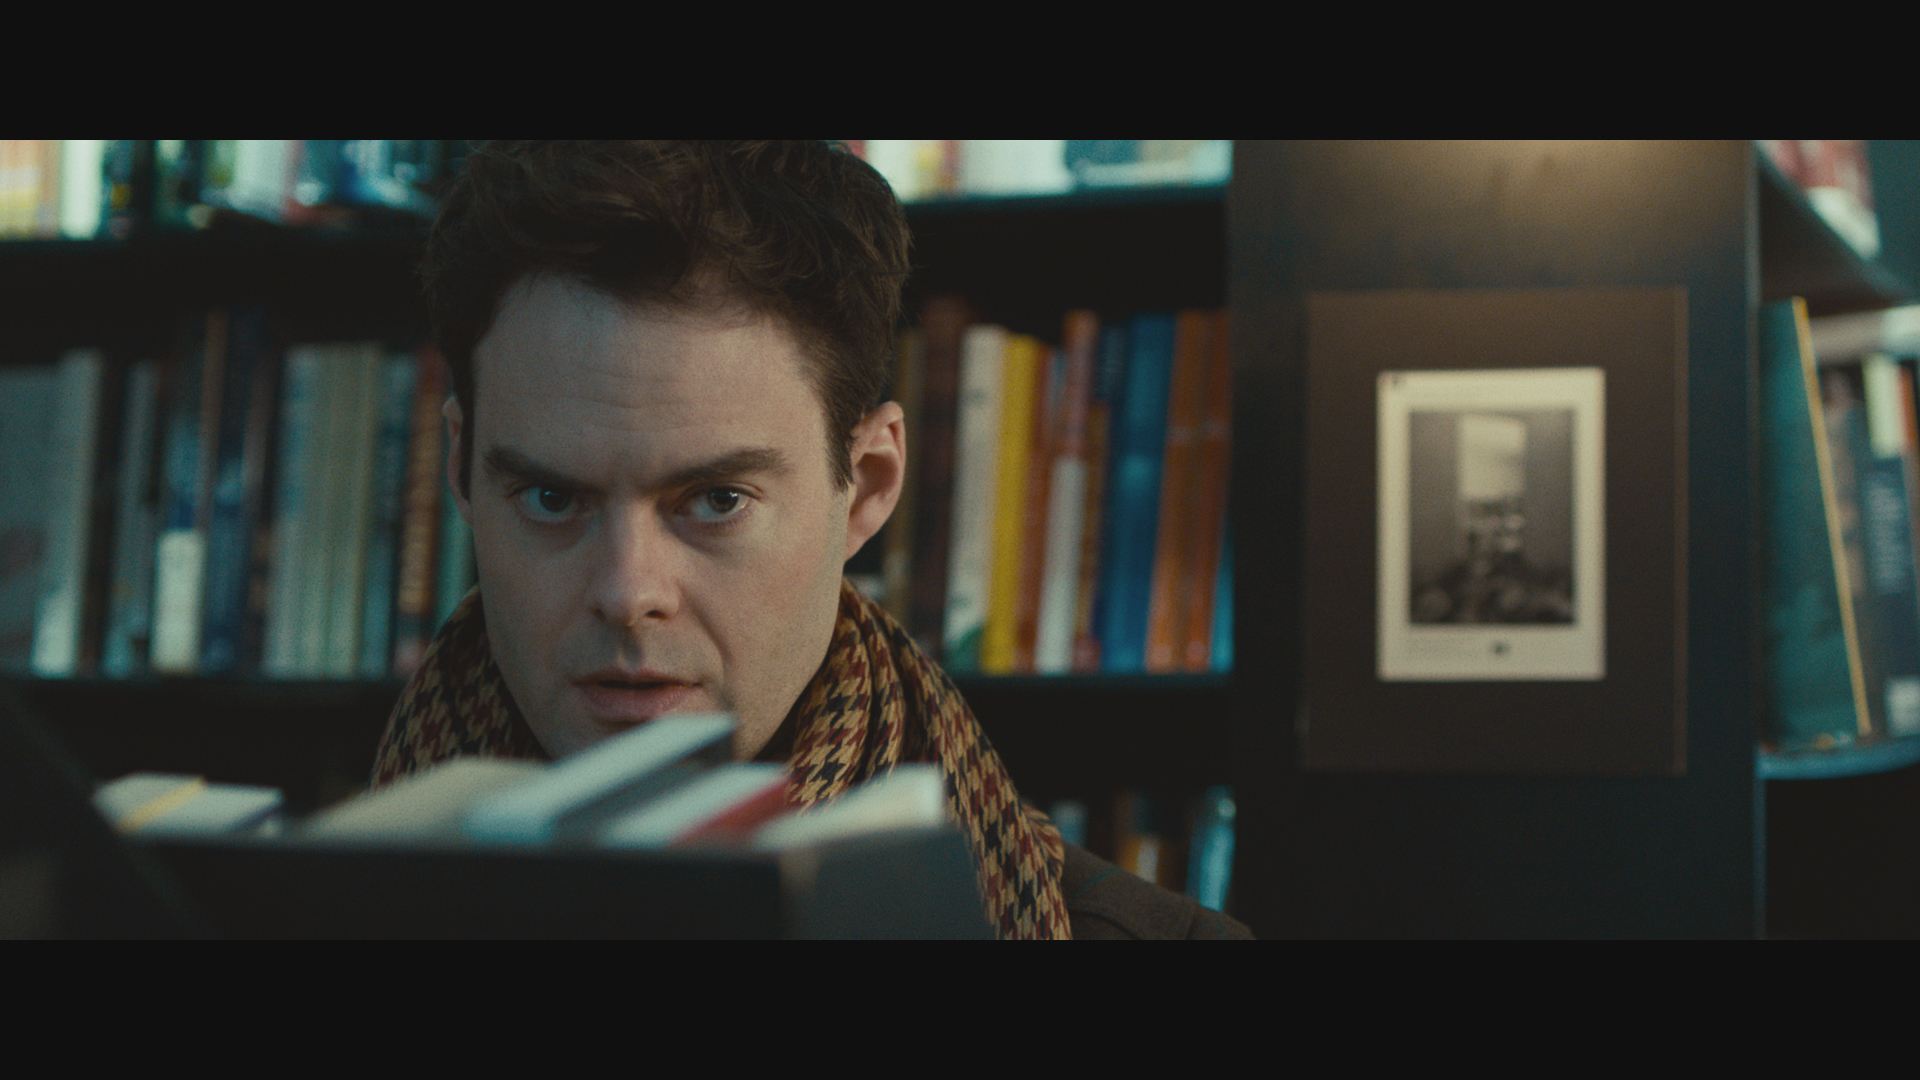 Bill Hader in The Skeleton Twins (2014)